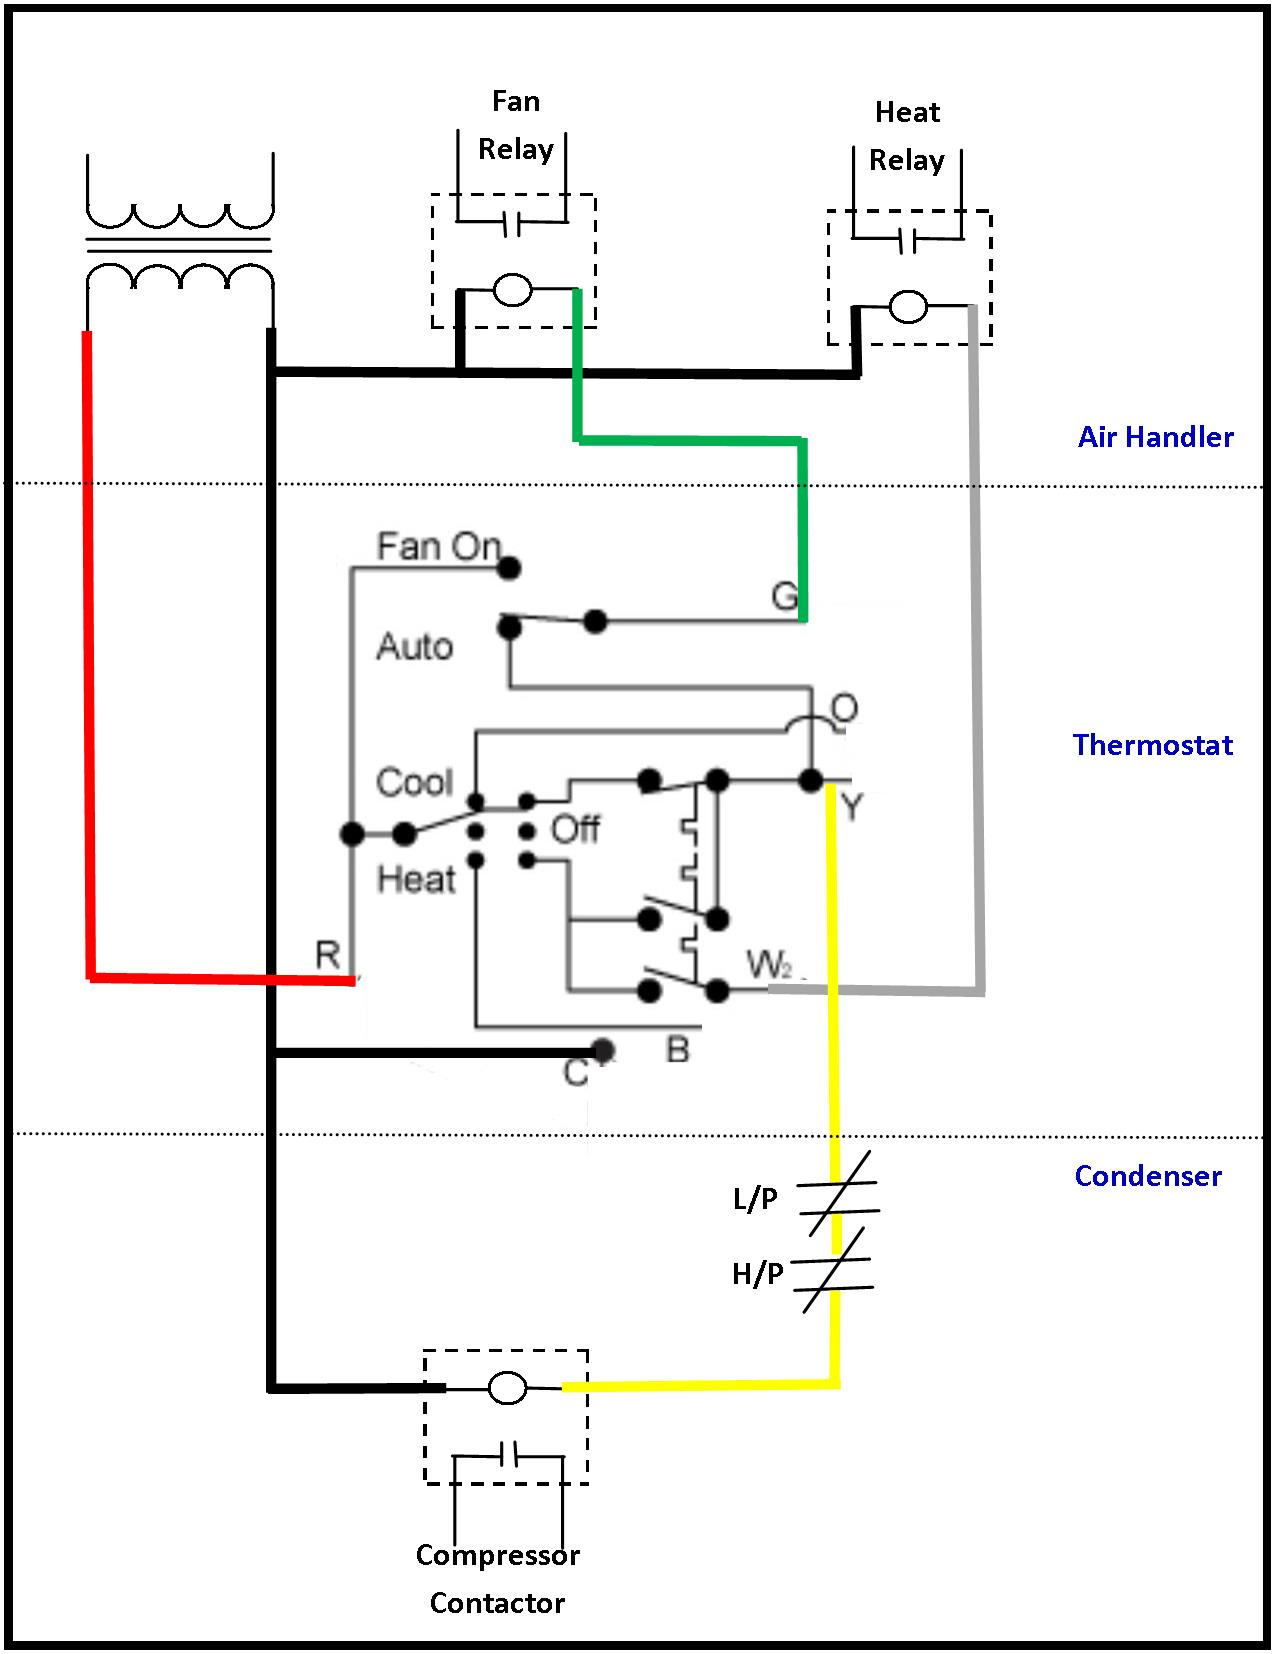 AC low voltage wiring diagram1 hvac wire diagram hvac diagrams schematics \u2022 wiring diagrams j hvac wiring diagrams 101 at virtualis.co